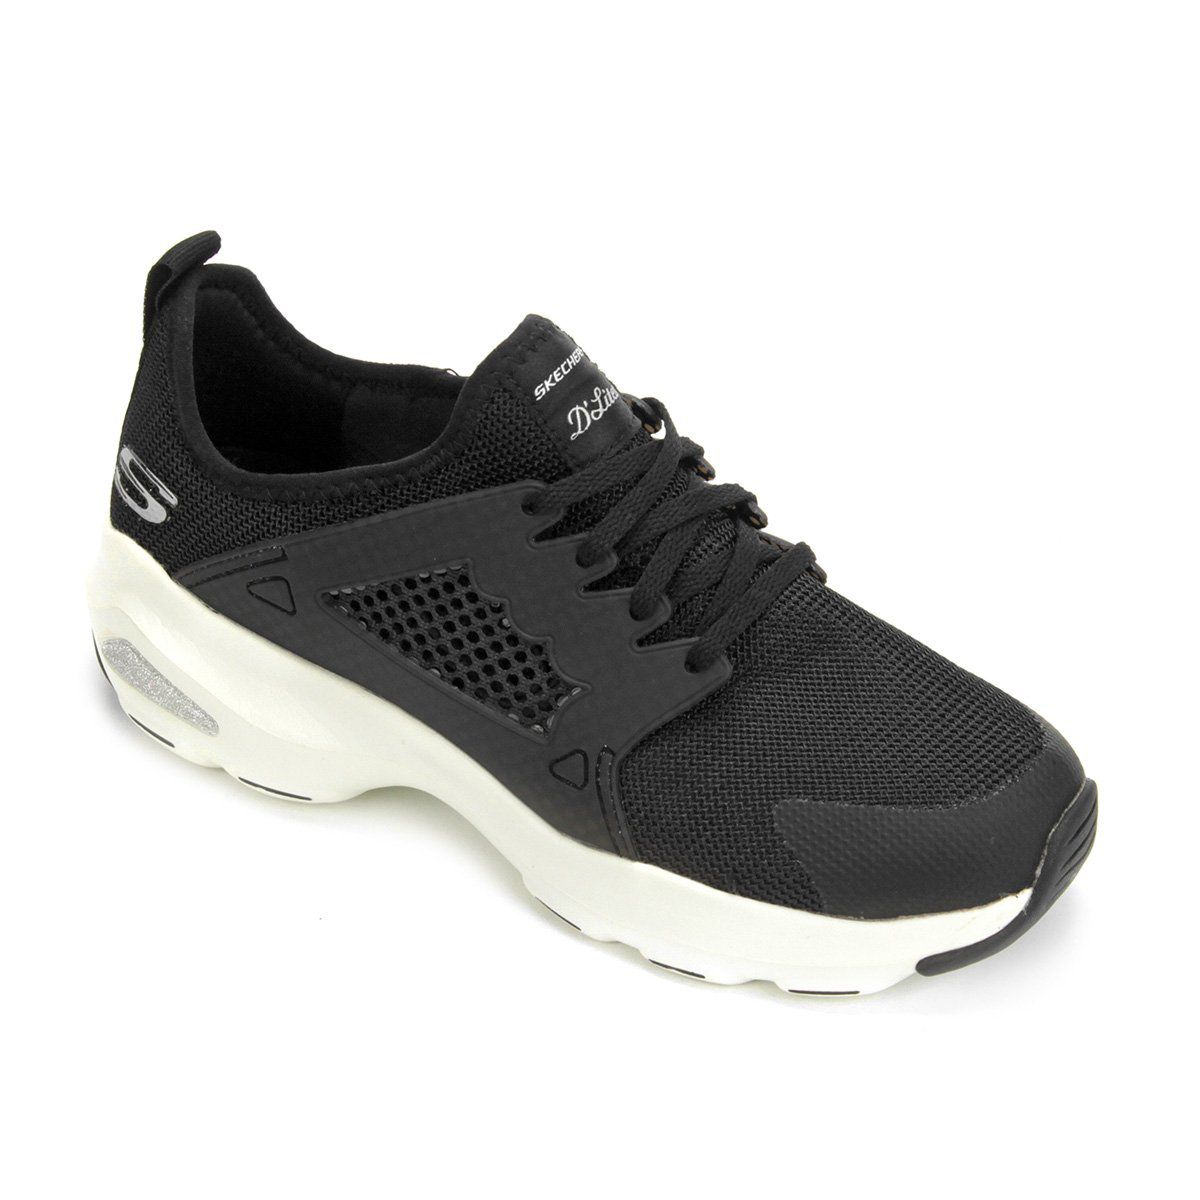 TÊNIS SKECHERS D LITE ULTRA AT FEMININO